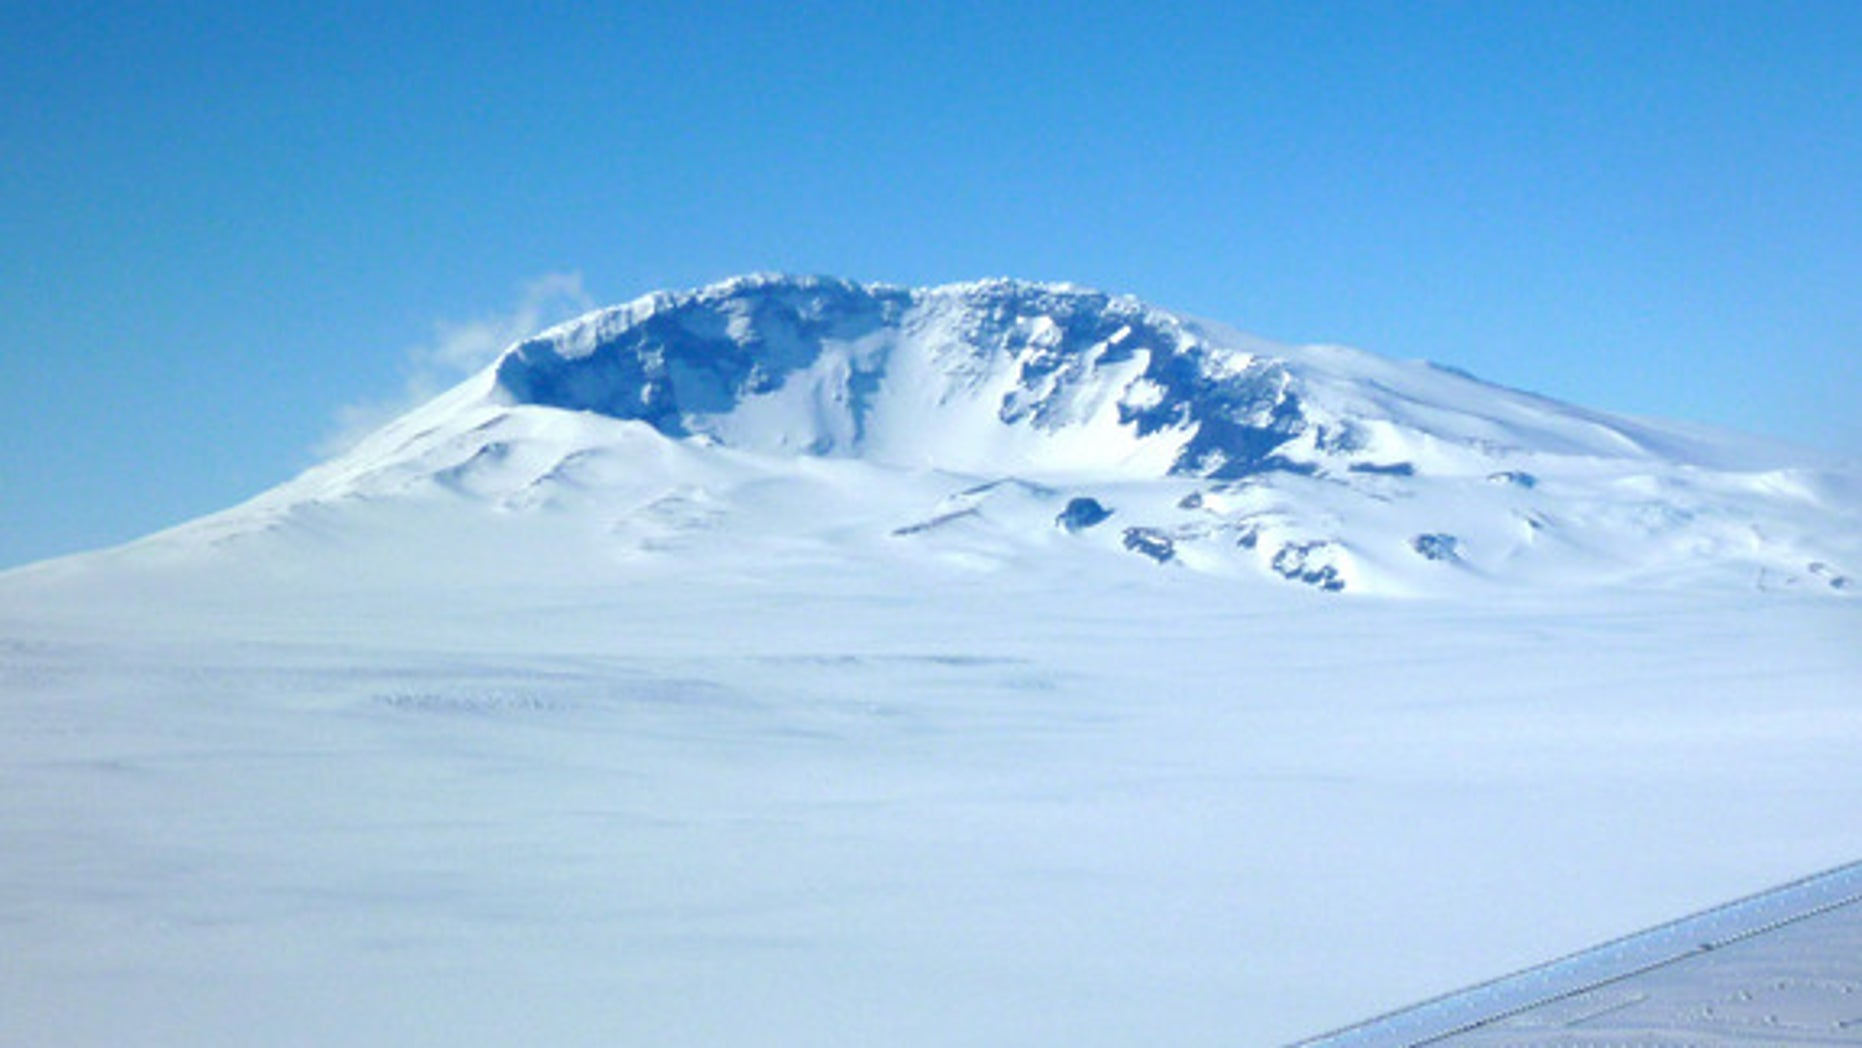 Mount Sidley is the youngest volcano rising above the ice in West Antarctica's Executive Committee Range. A group of seismologists has detected new volcanic activity under the ice about 30 miles ahead of Mount Sidley.